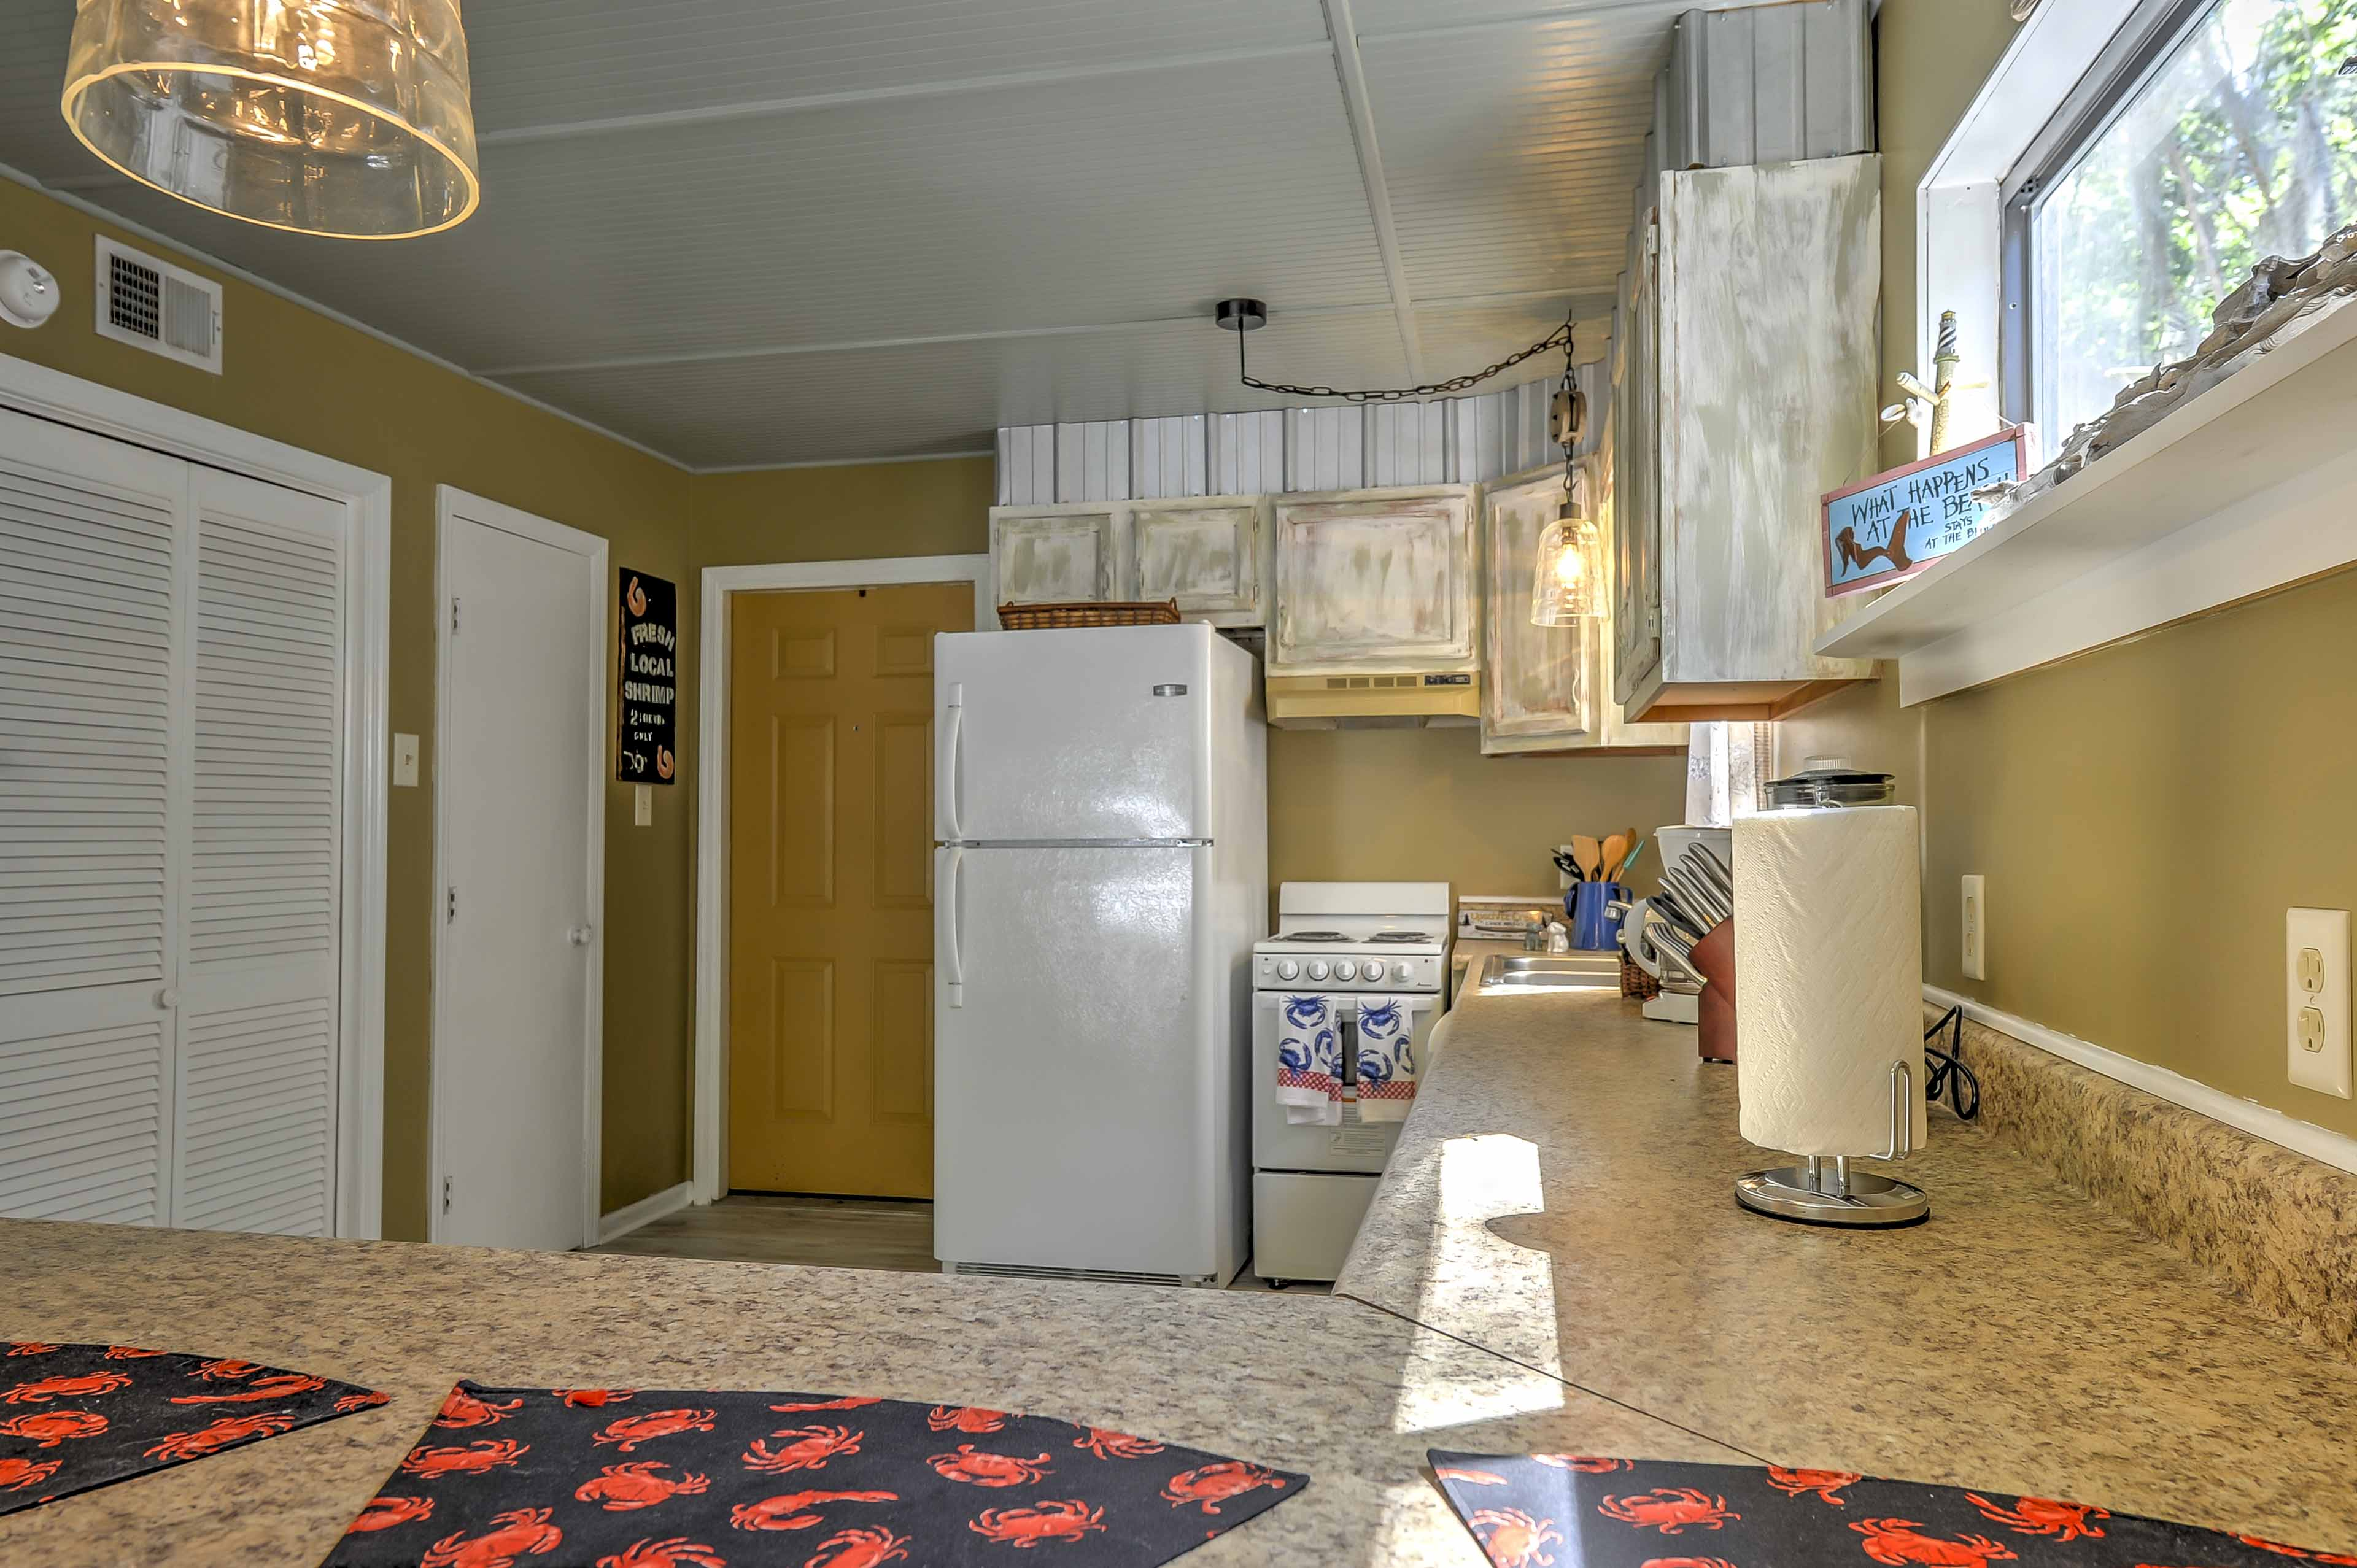 The fully equipped kitchen allows you to whip up your favorite family recipes.